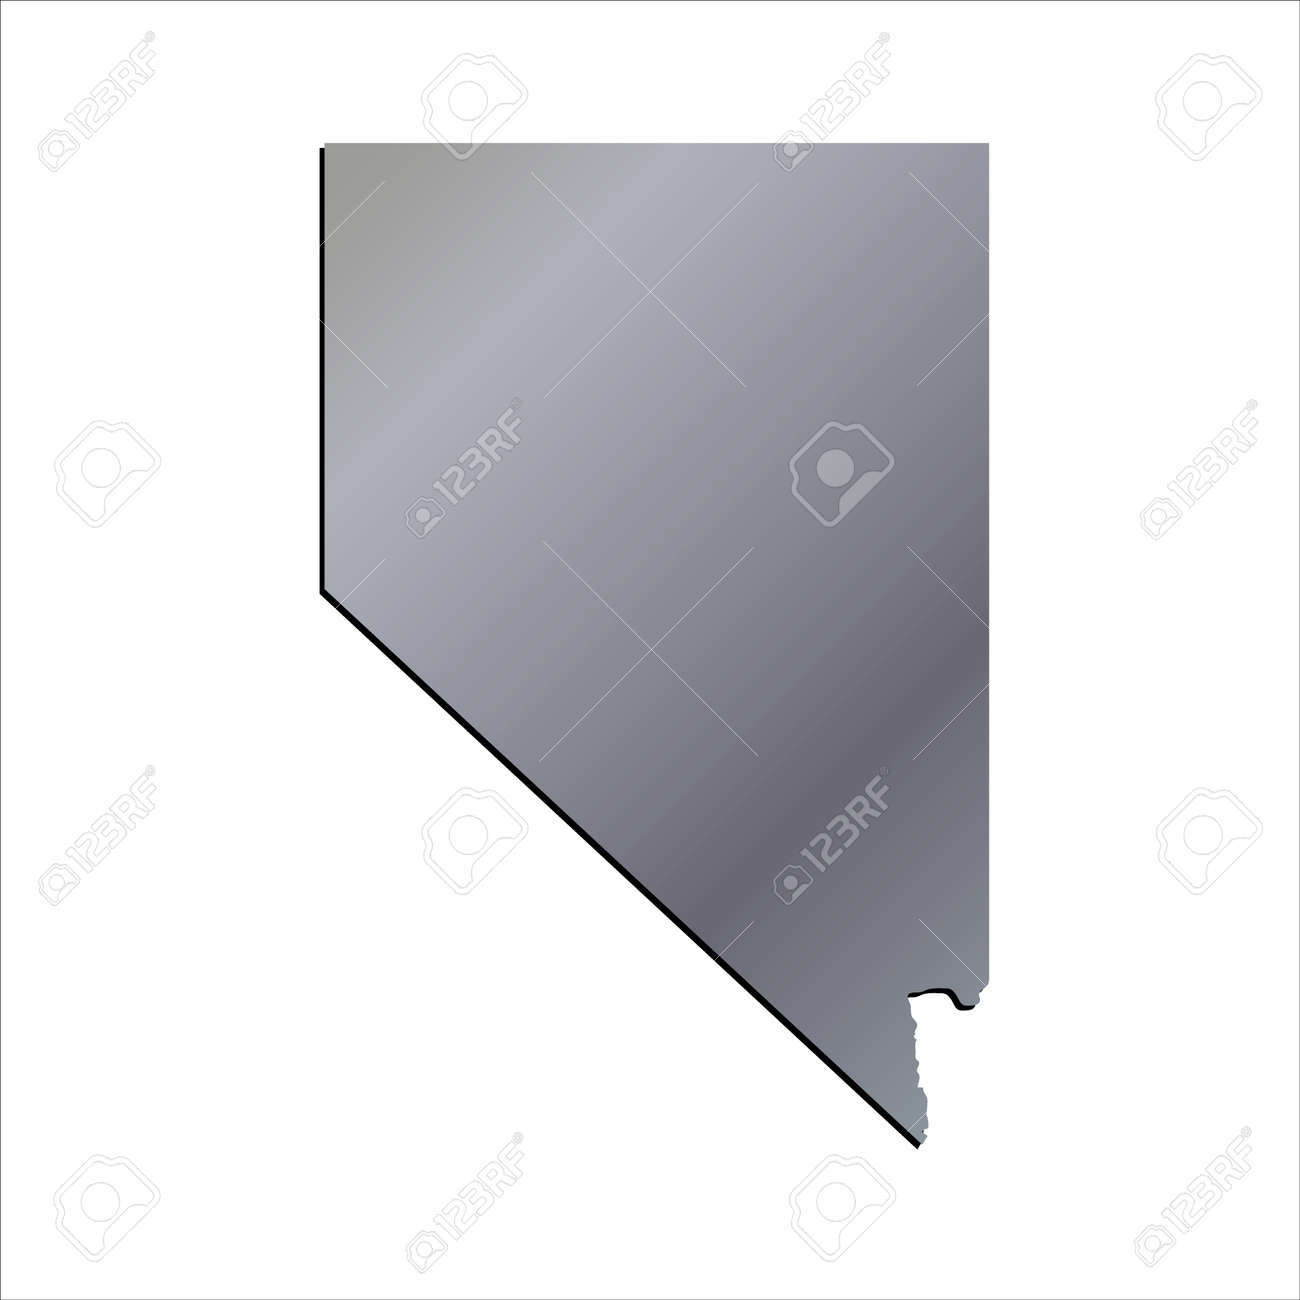 3d Nevada State Usa Aluminium Outline Map Royalty Free Cliparts Vectors And Stock Illustration Image 60194872